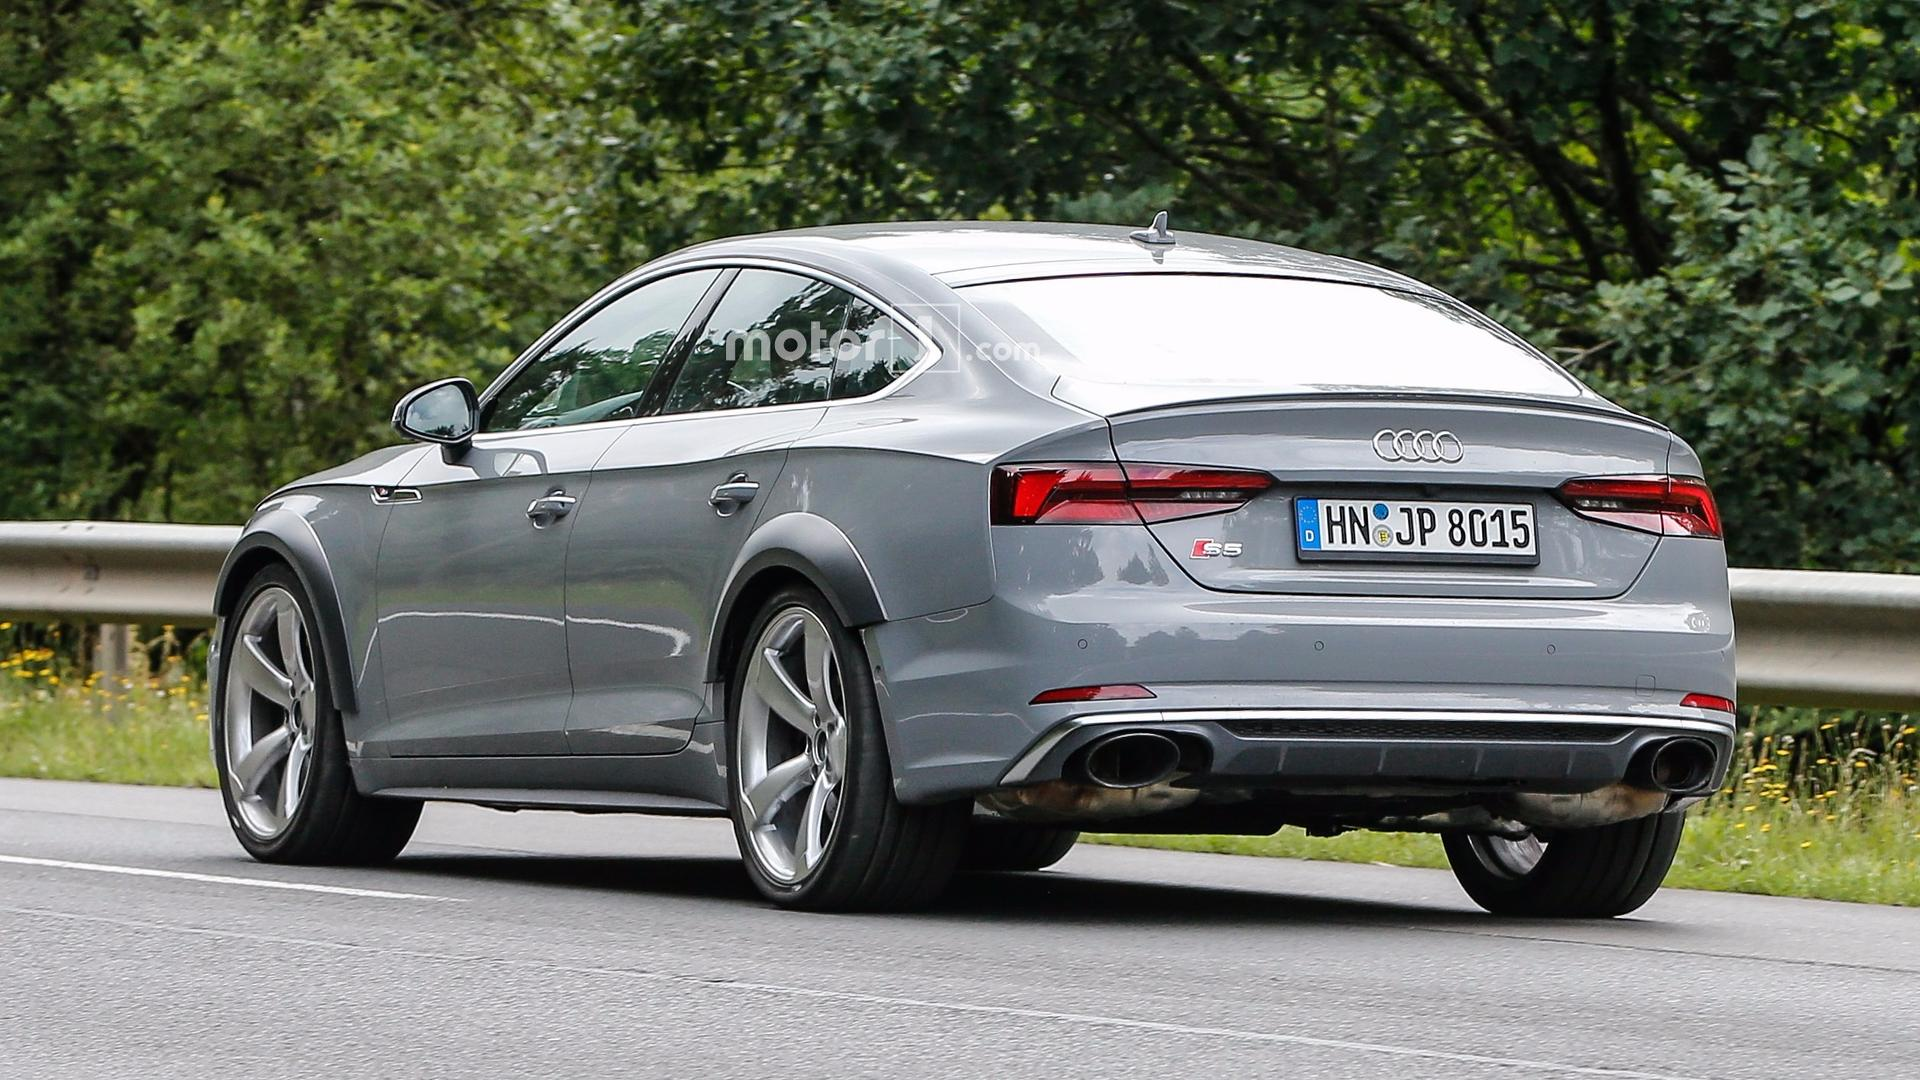 2019 Audi Rs5 Sportback Is That You